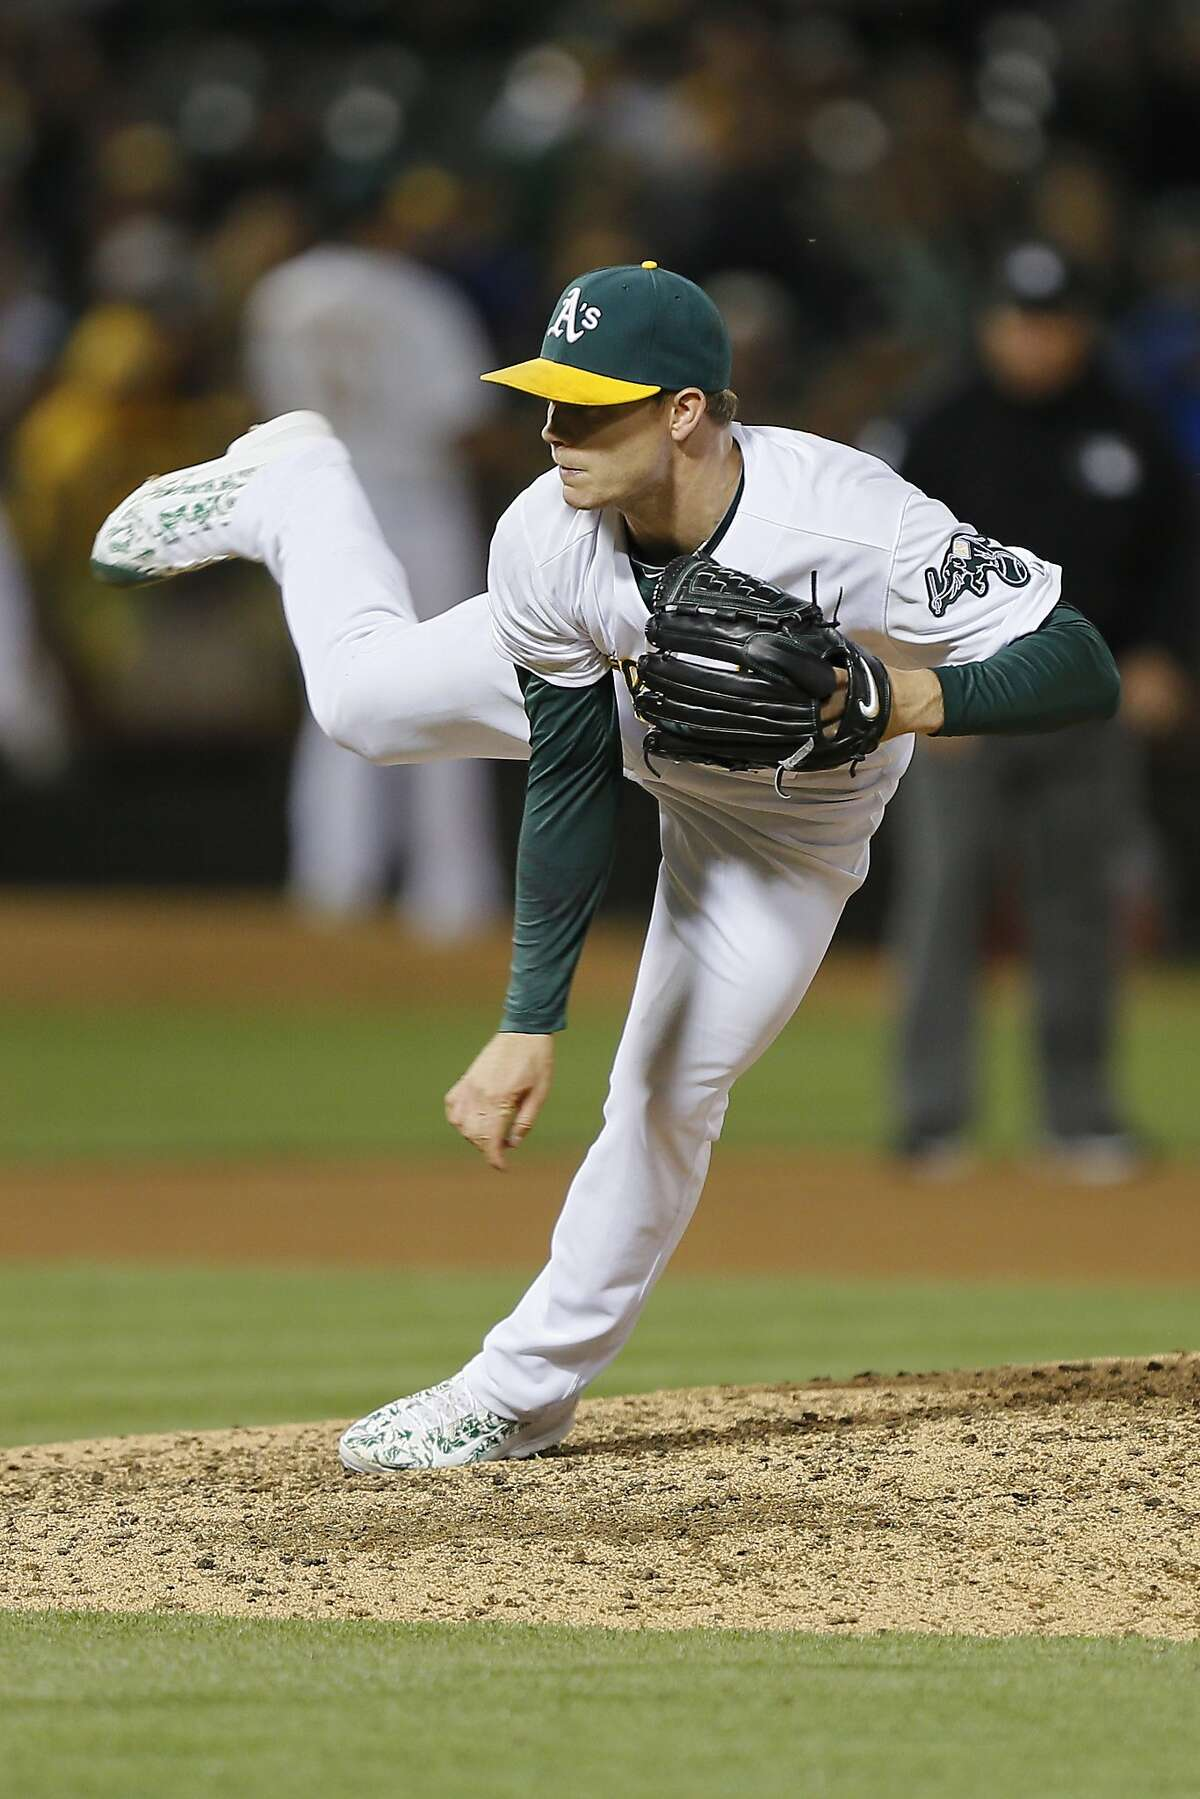 OAKLAND, CA - JUNE 19: Starting pitcher Sonny Gray #54 of the Oakland Athletics follows through on a pitch against the Los Angeles Angels of Anaheim in the sixth inning at O.co Coliseum on June 19, 2015 in Oakland, California. The Angels won 12-7, with Gray getting a no decision. (Photo by Brian Bahr/Getty Images)